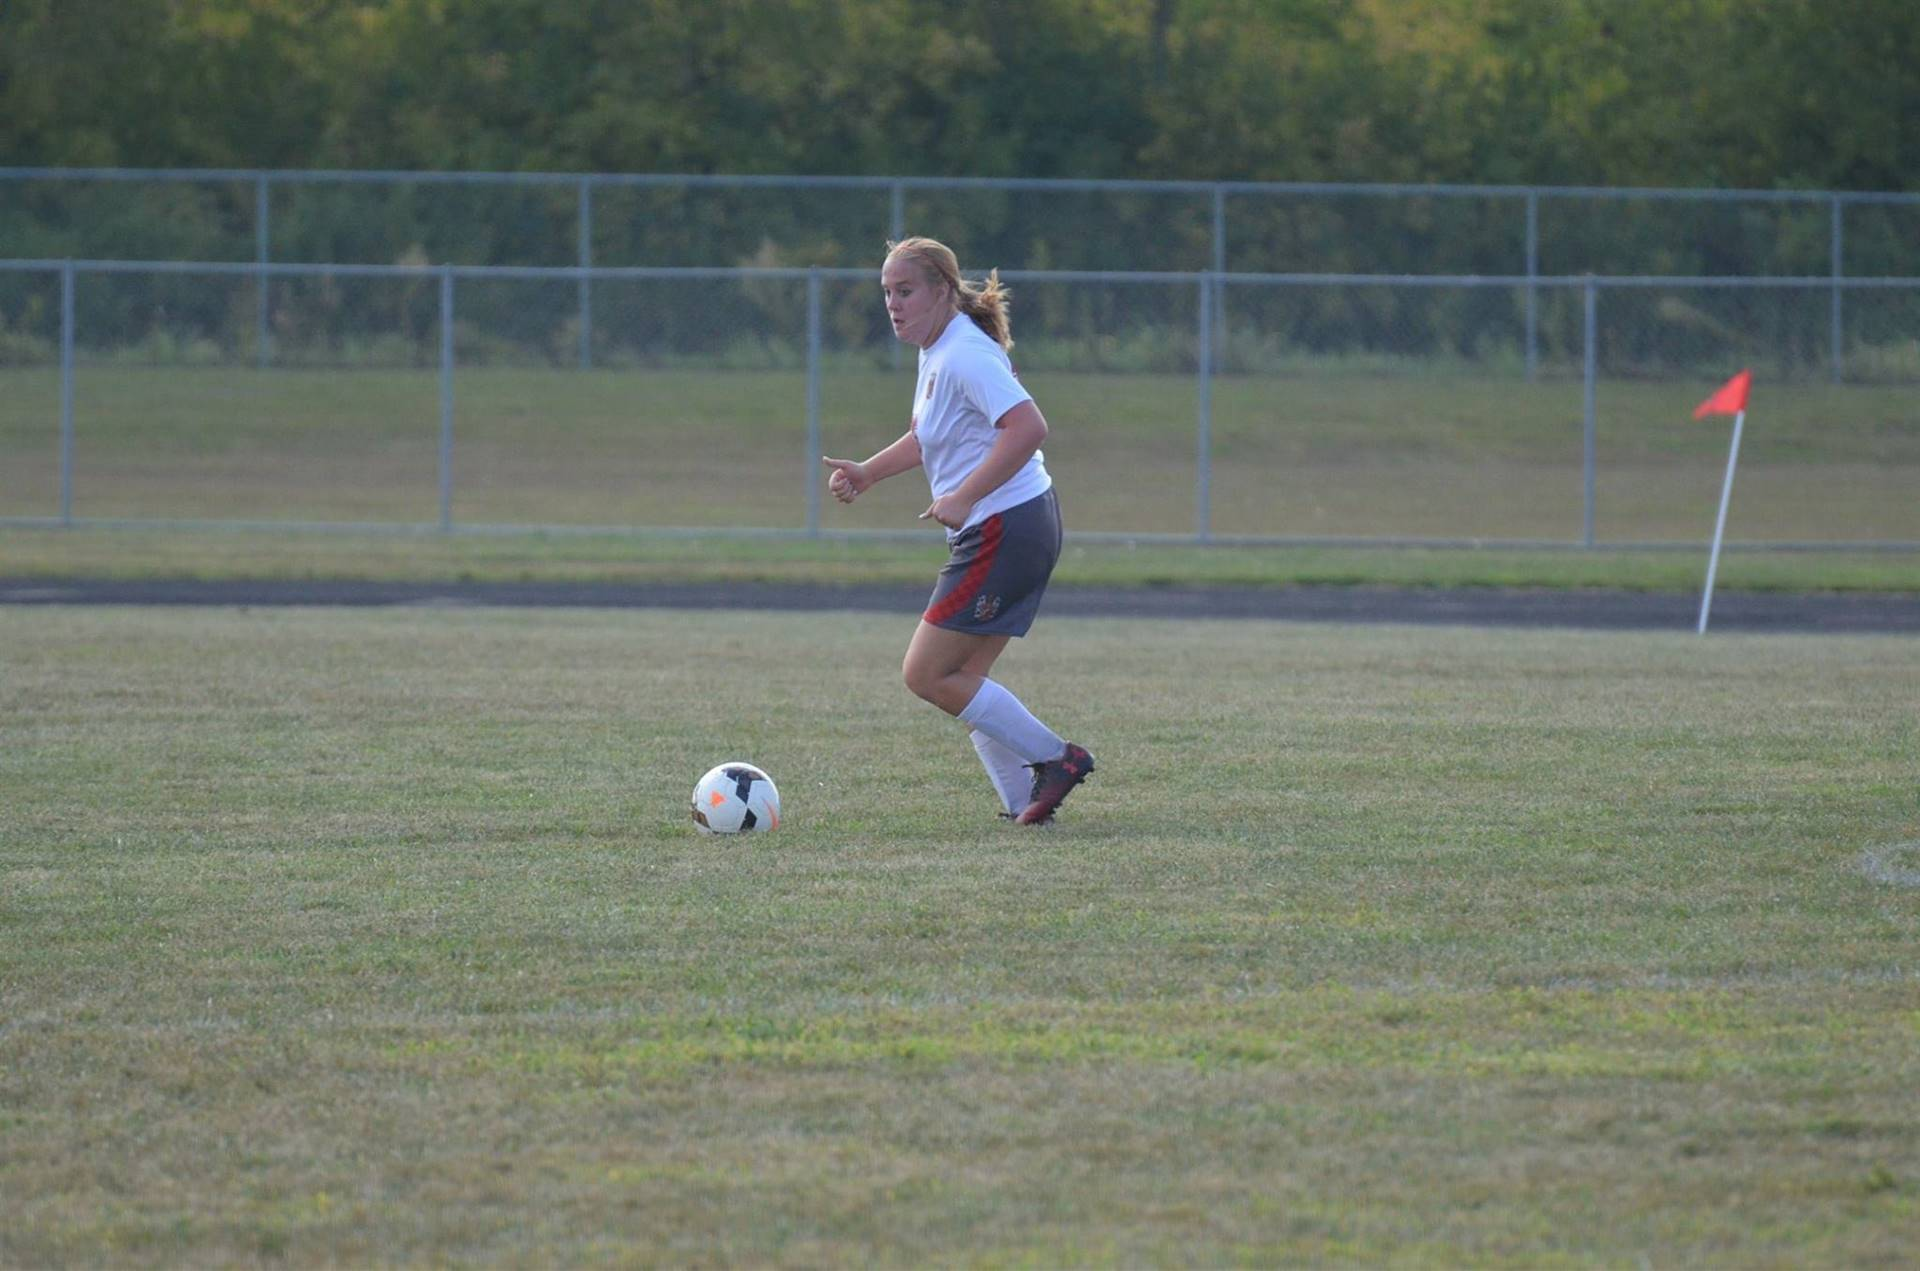 Chey Fout looking to kick the ball up the field.